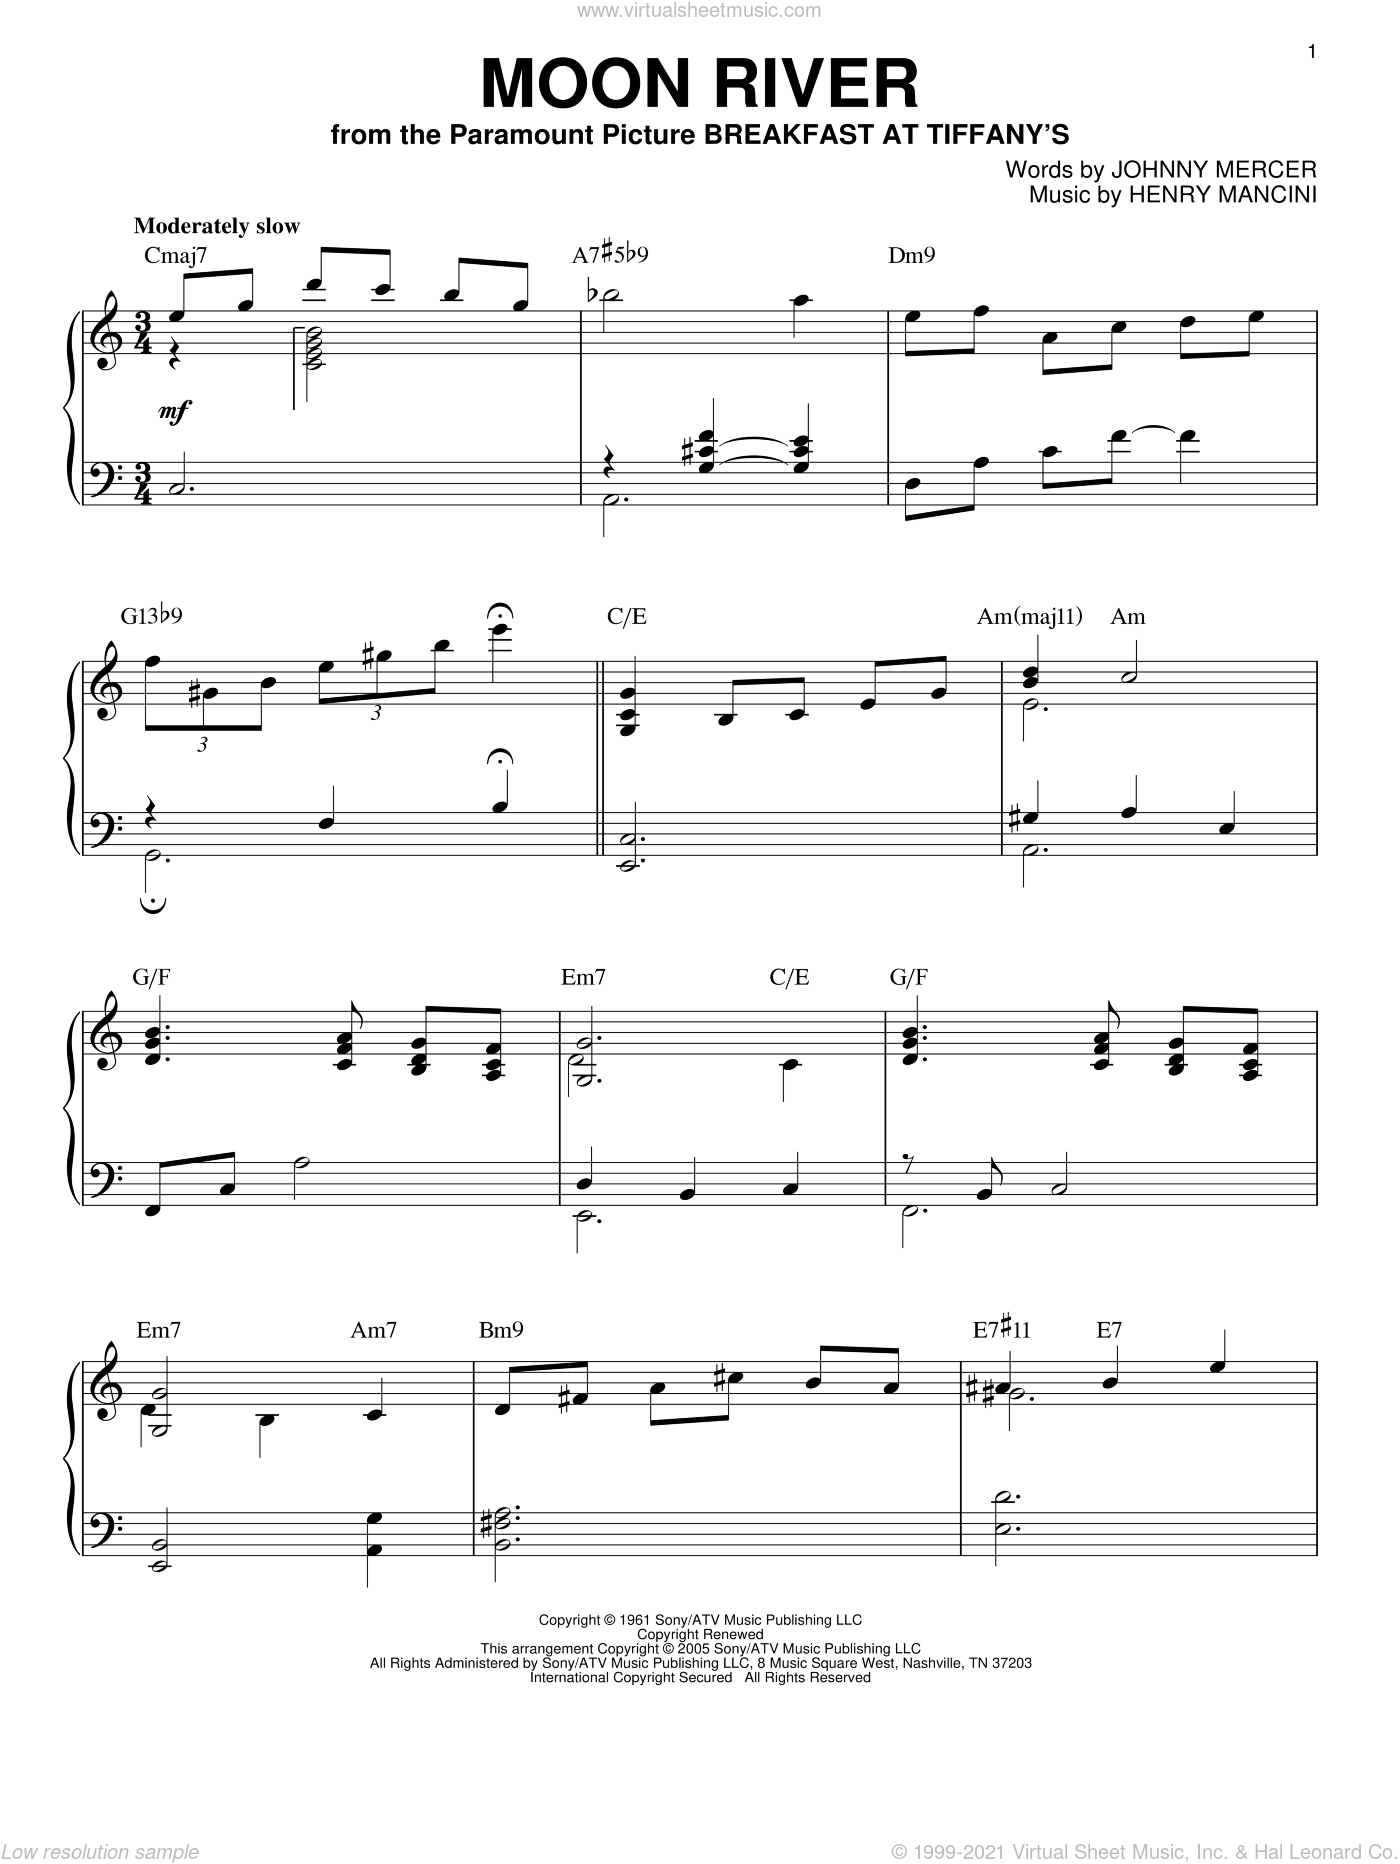 Moon River sheet music for piano solo by Henry Mancini, Andy Williams and Johnny Mercer, wedding score, intermediate skill level